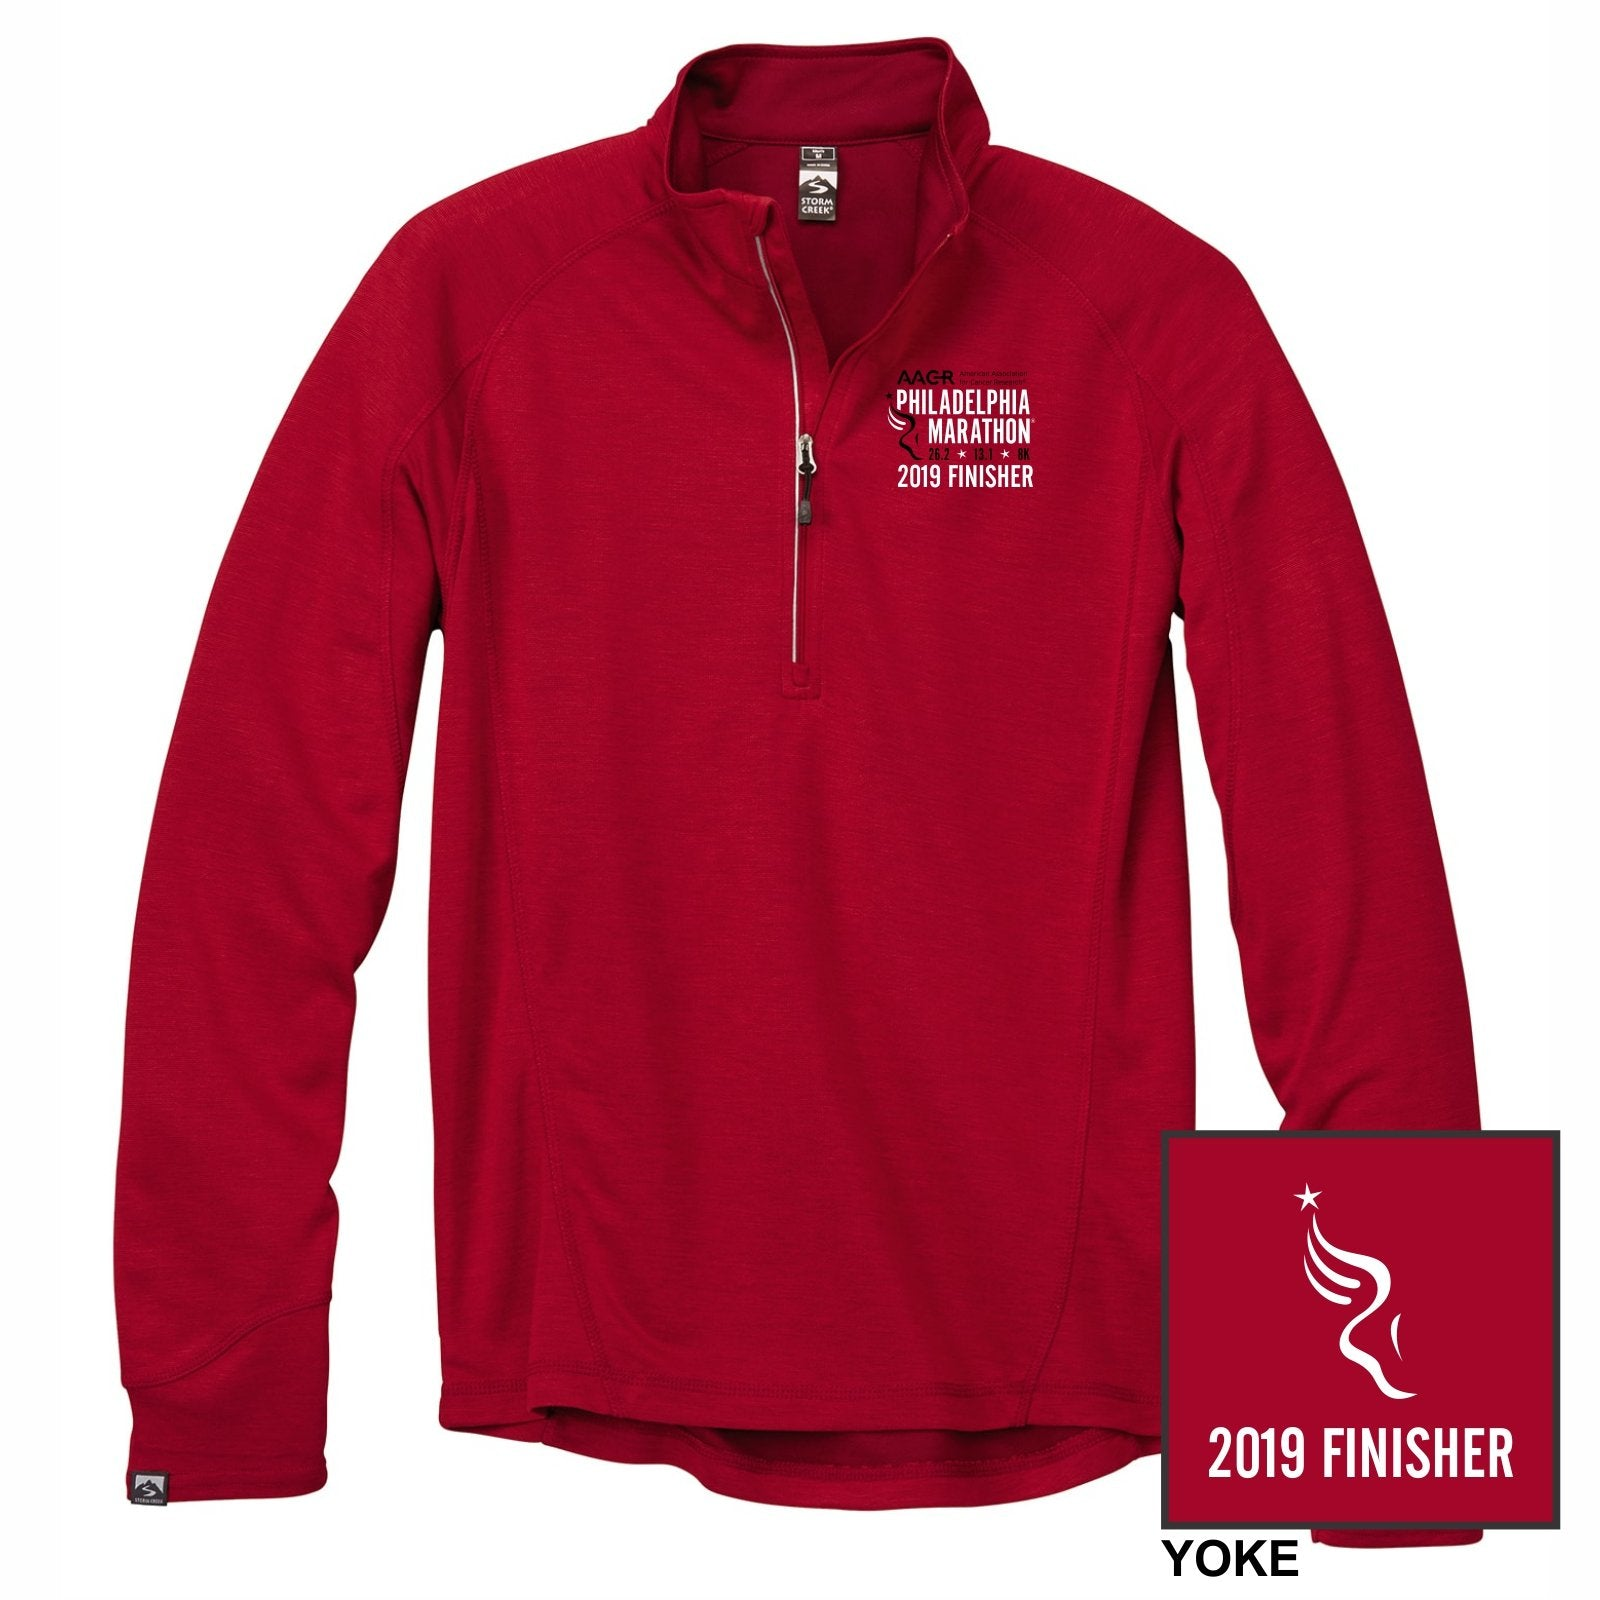 Men's Bamboo 1/4 Zip -Brick 'Finisher 2019 Embr. Design' - AACR Philadelphia Marathon